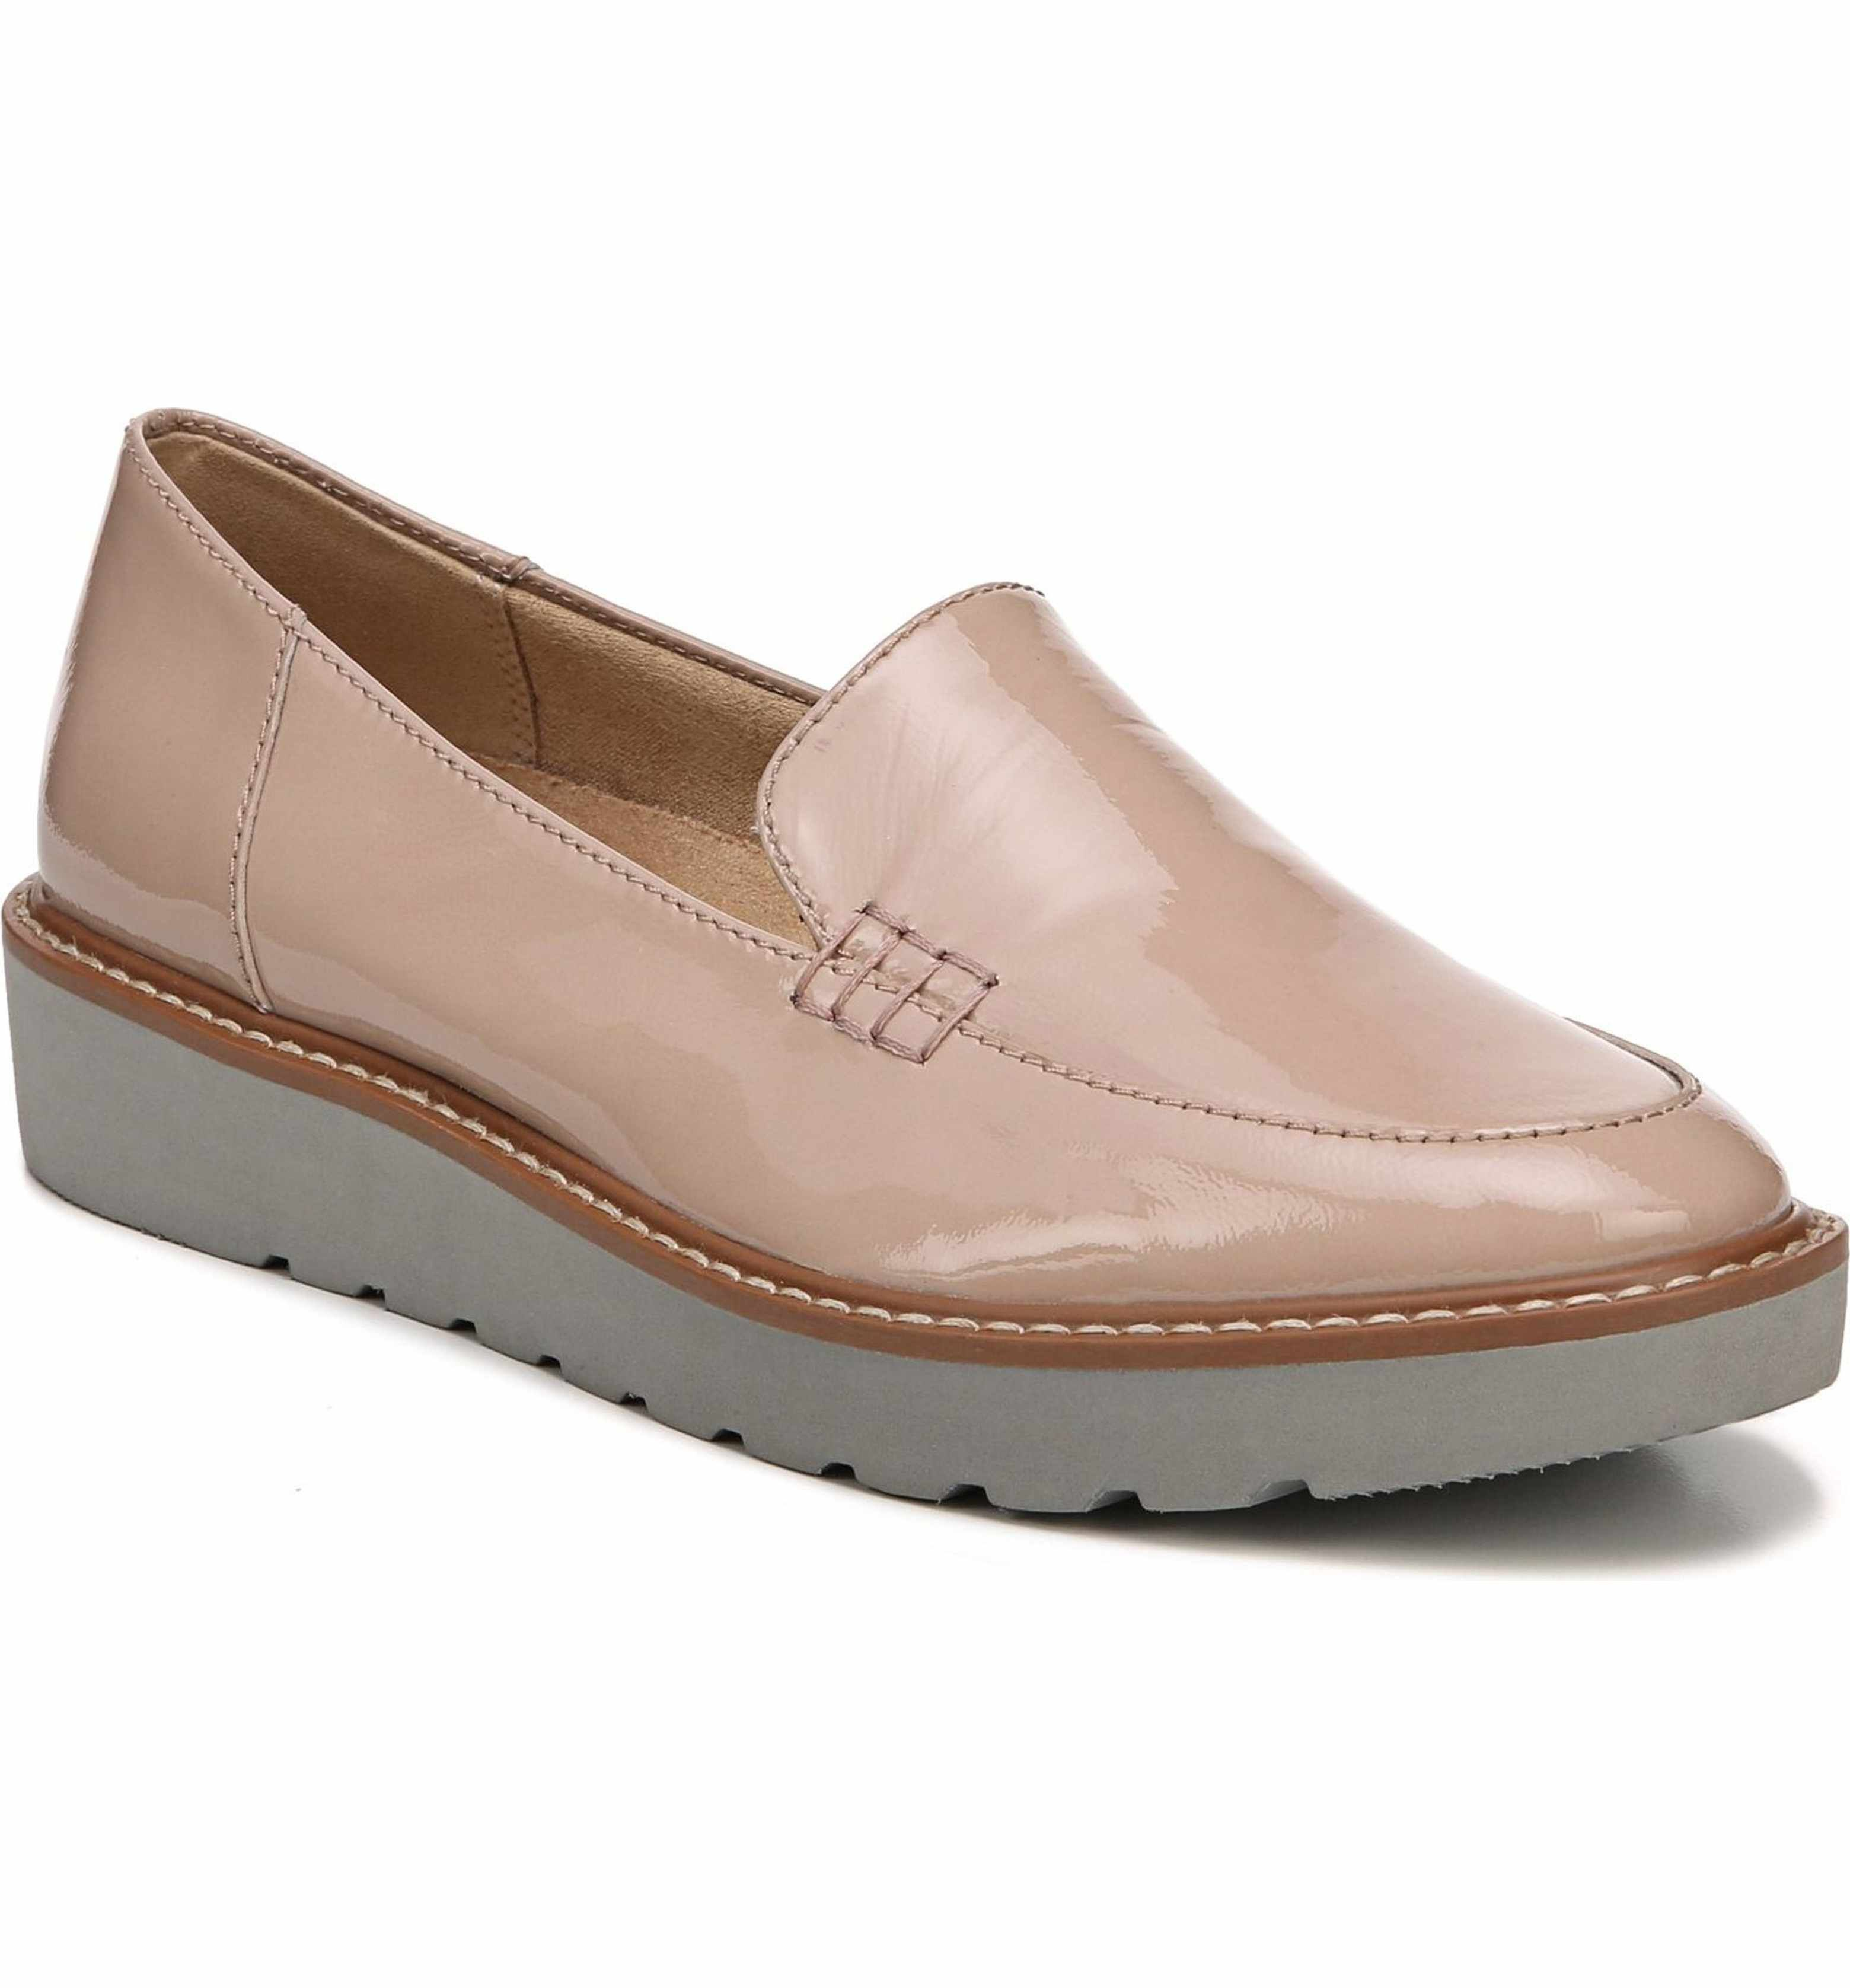 9e06c264396 Main Image - Naturalizer Andie Loafer (Women)